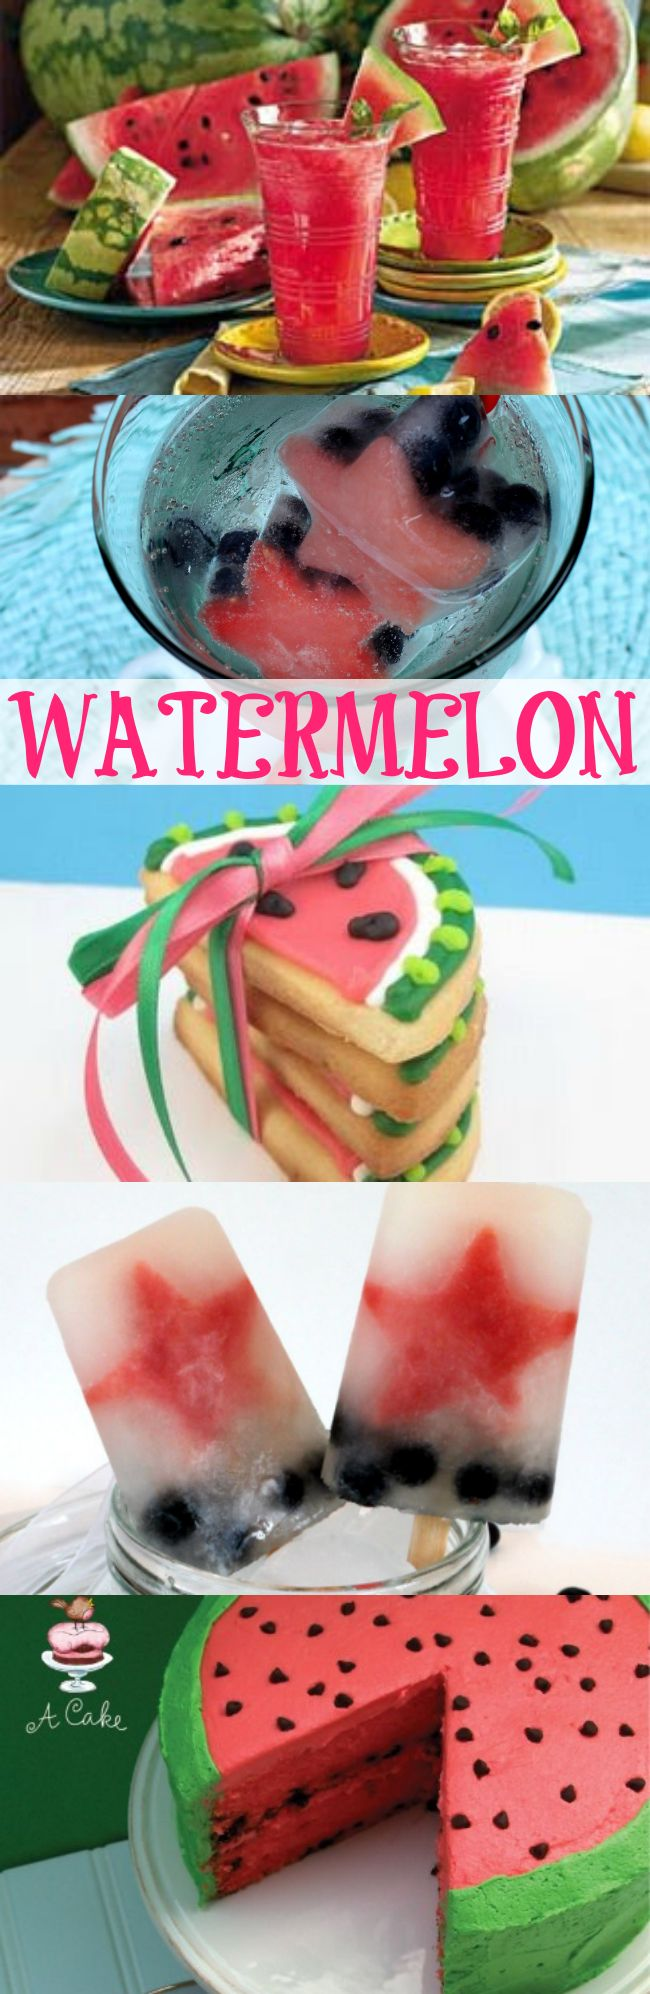 There are so many easy ways to enjoy watermelon in the summer besides biting into a slice! Enjoy these other Watermelon Drinks and Desserts  |  OHMY-CREATIVE.COM